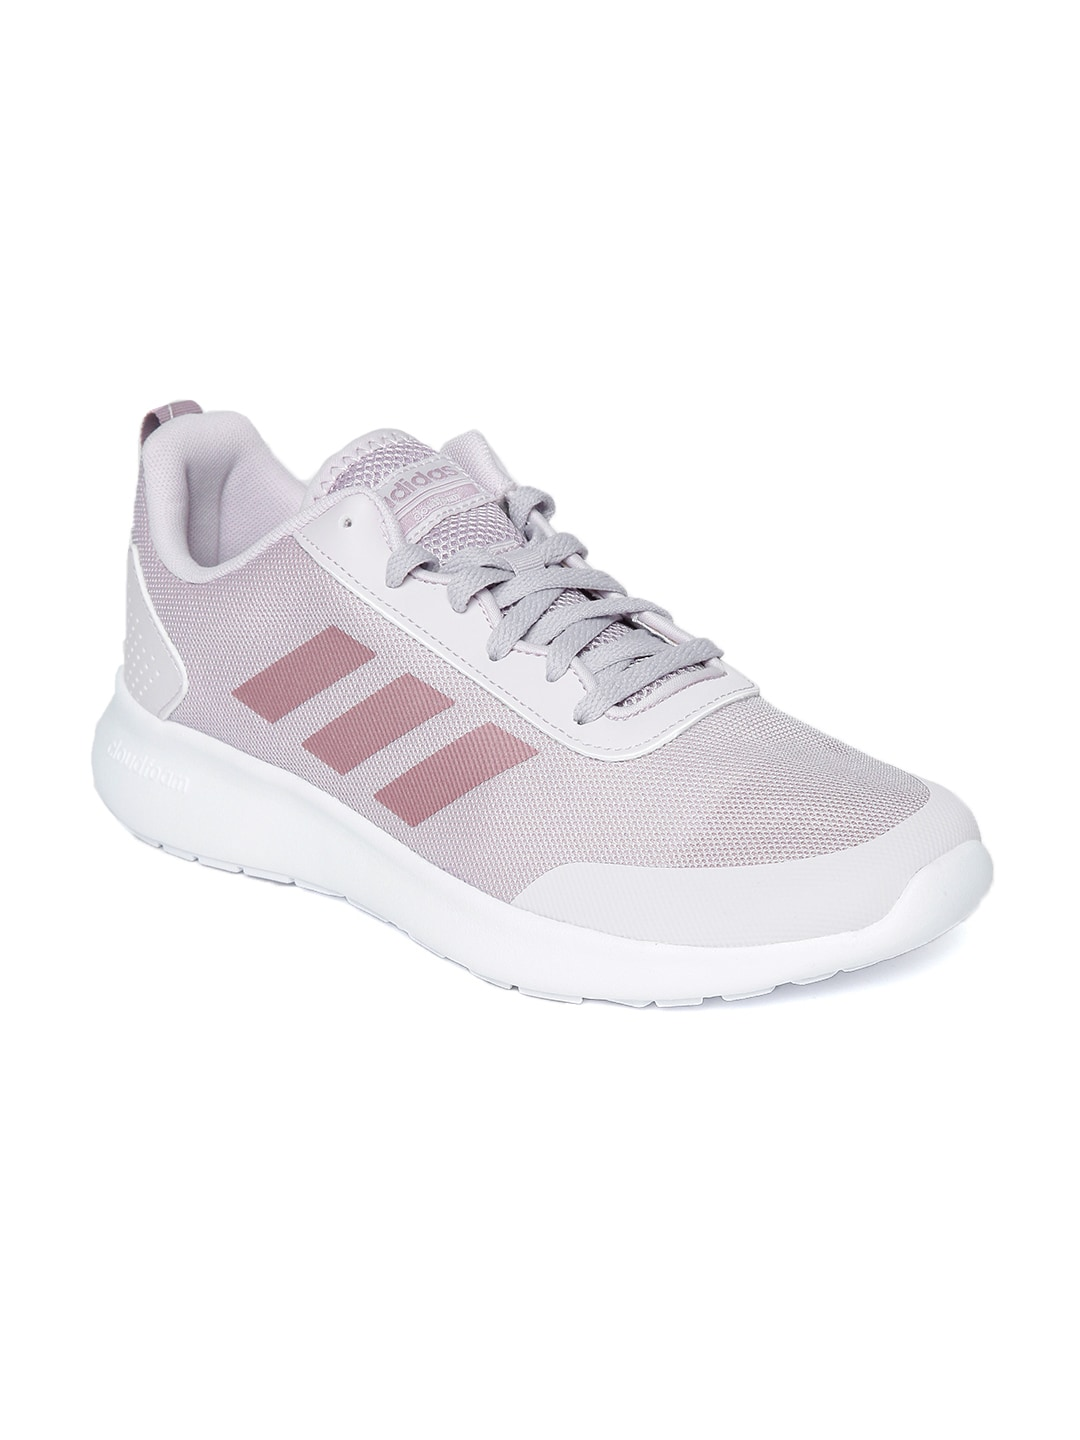 adidas - Exclusive adidas Online Store in India at Myntra 42ee6935380d4